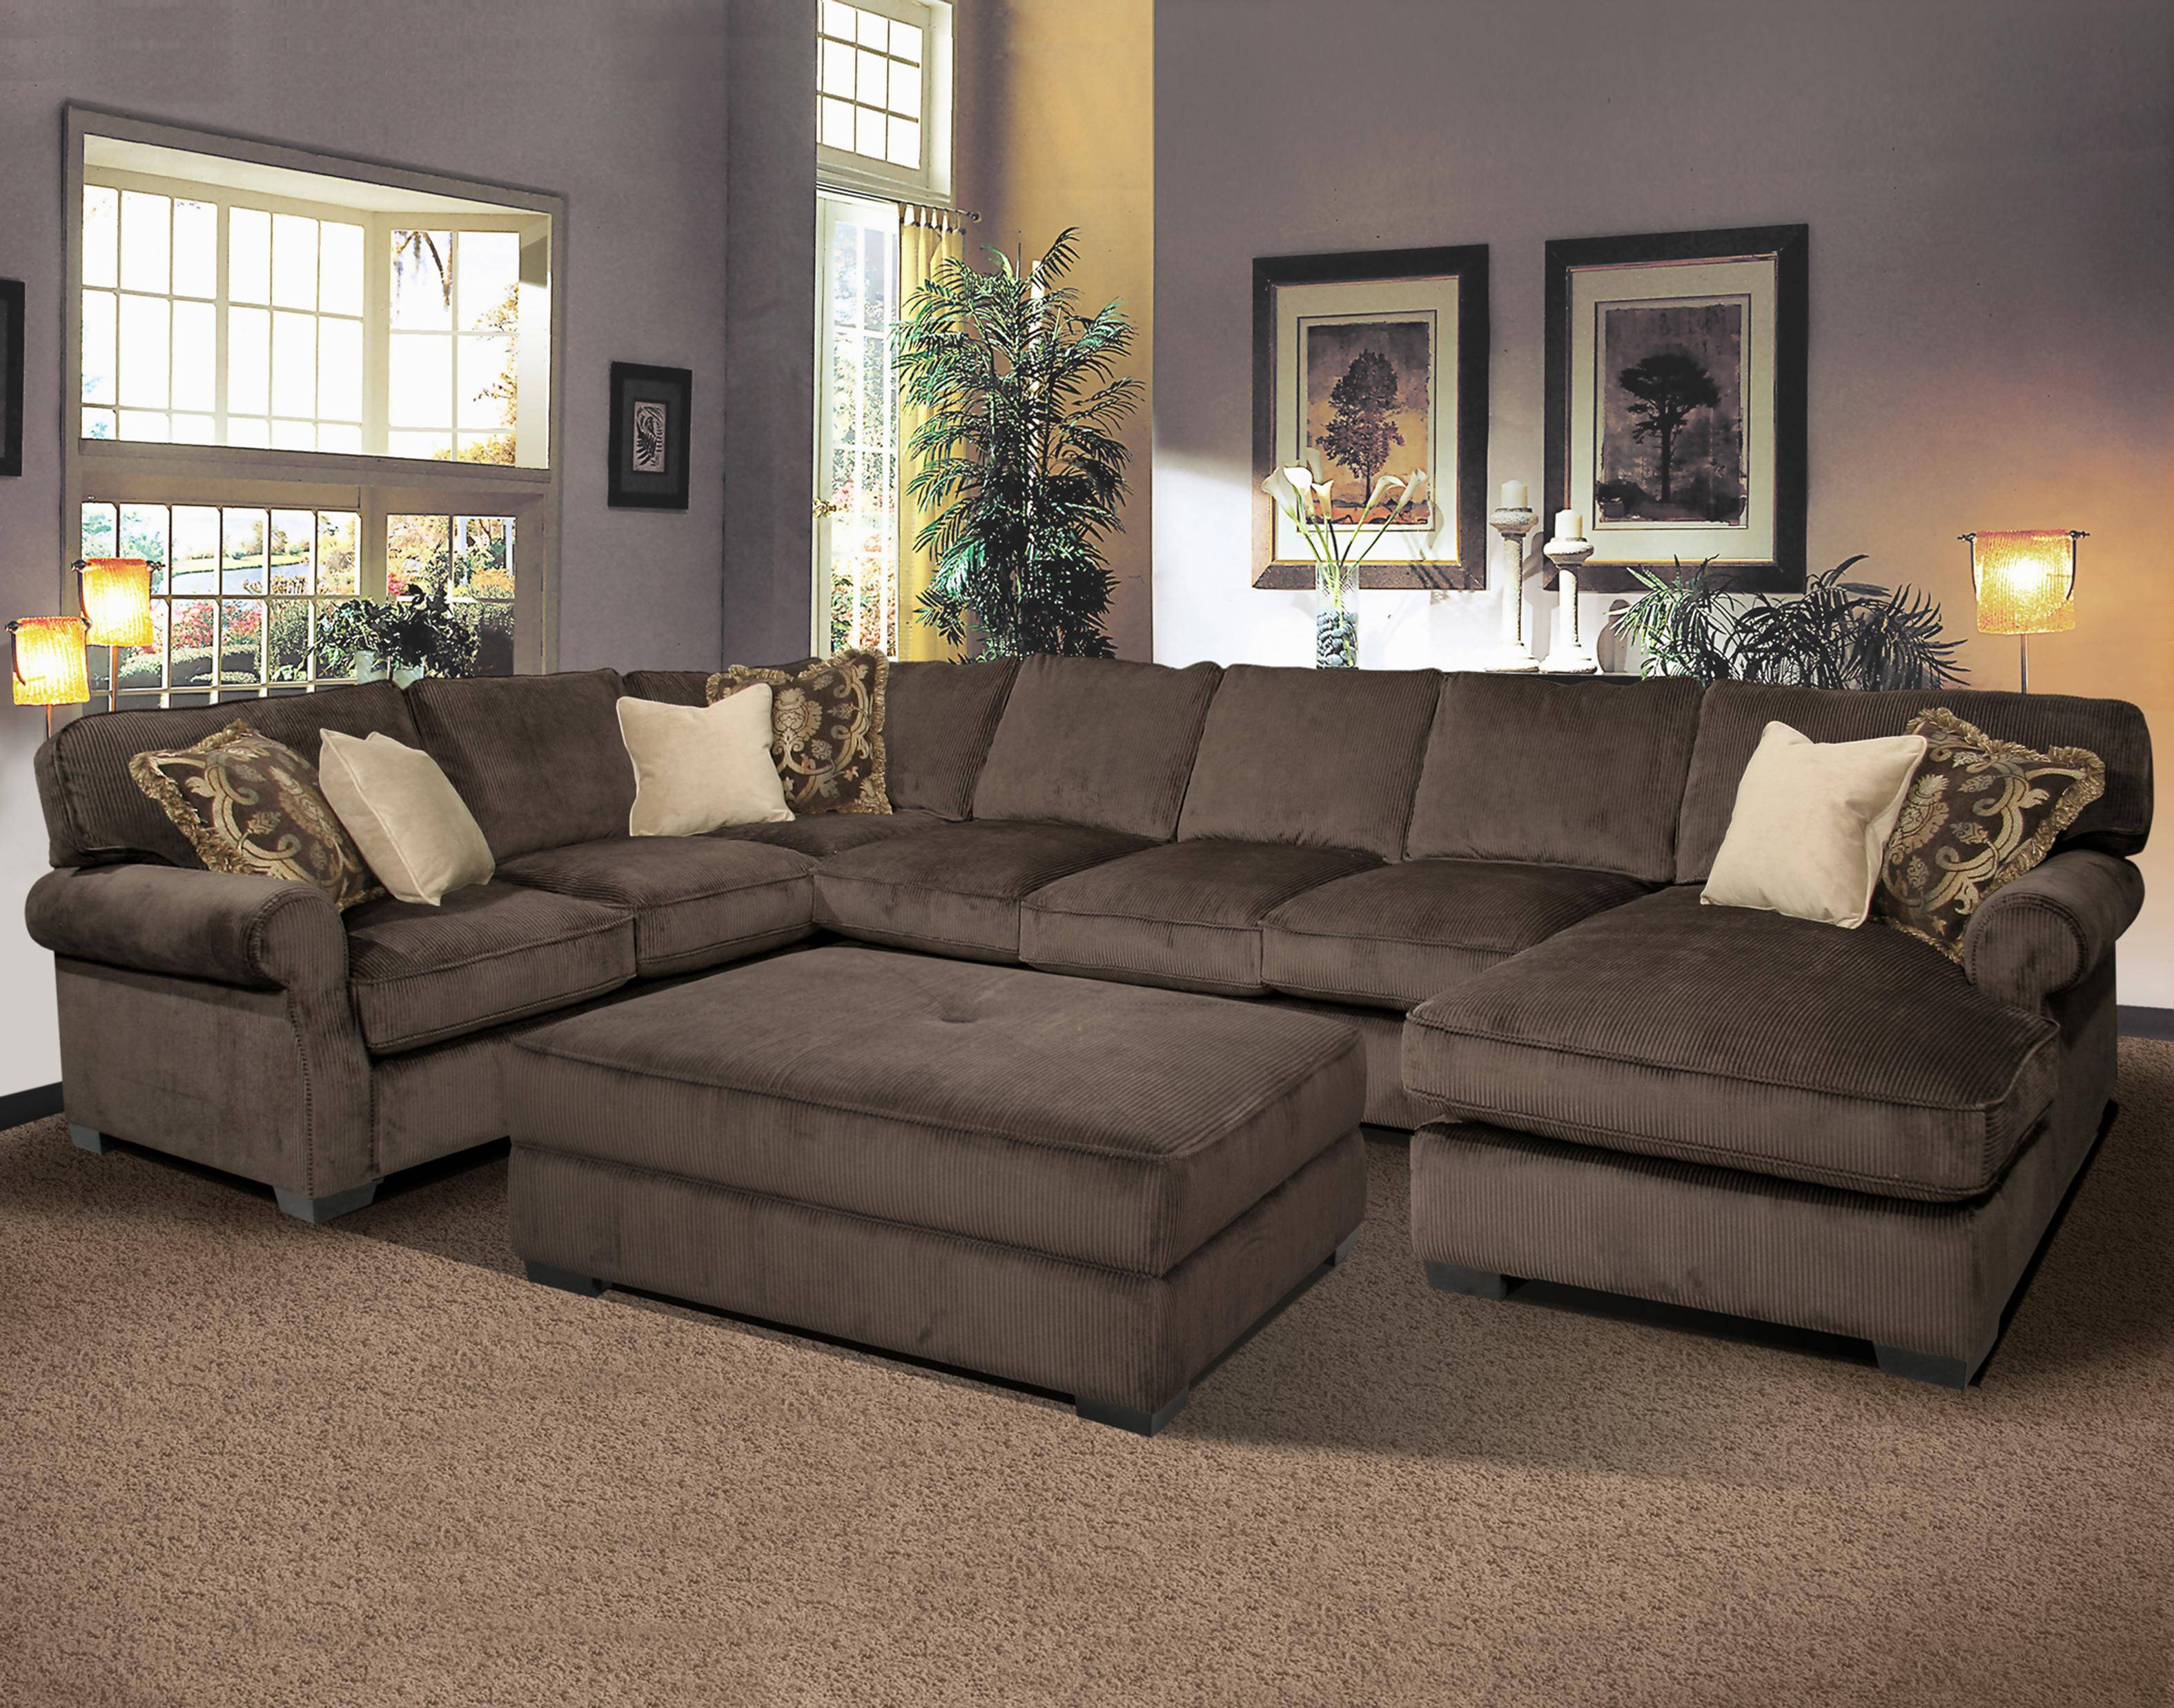 Fresh Large Sectional Sofa With Chaise Lounge 69 For Your Abbyson With Regard To Sectional Sofa With Large Ottoman (View 6 of 30)